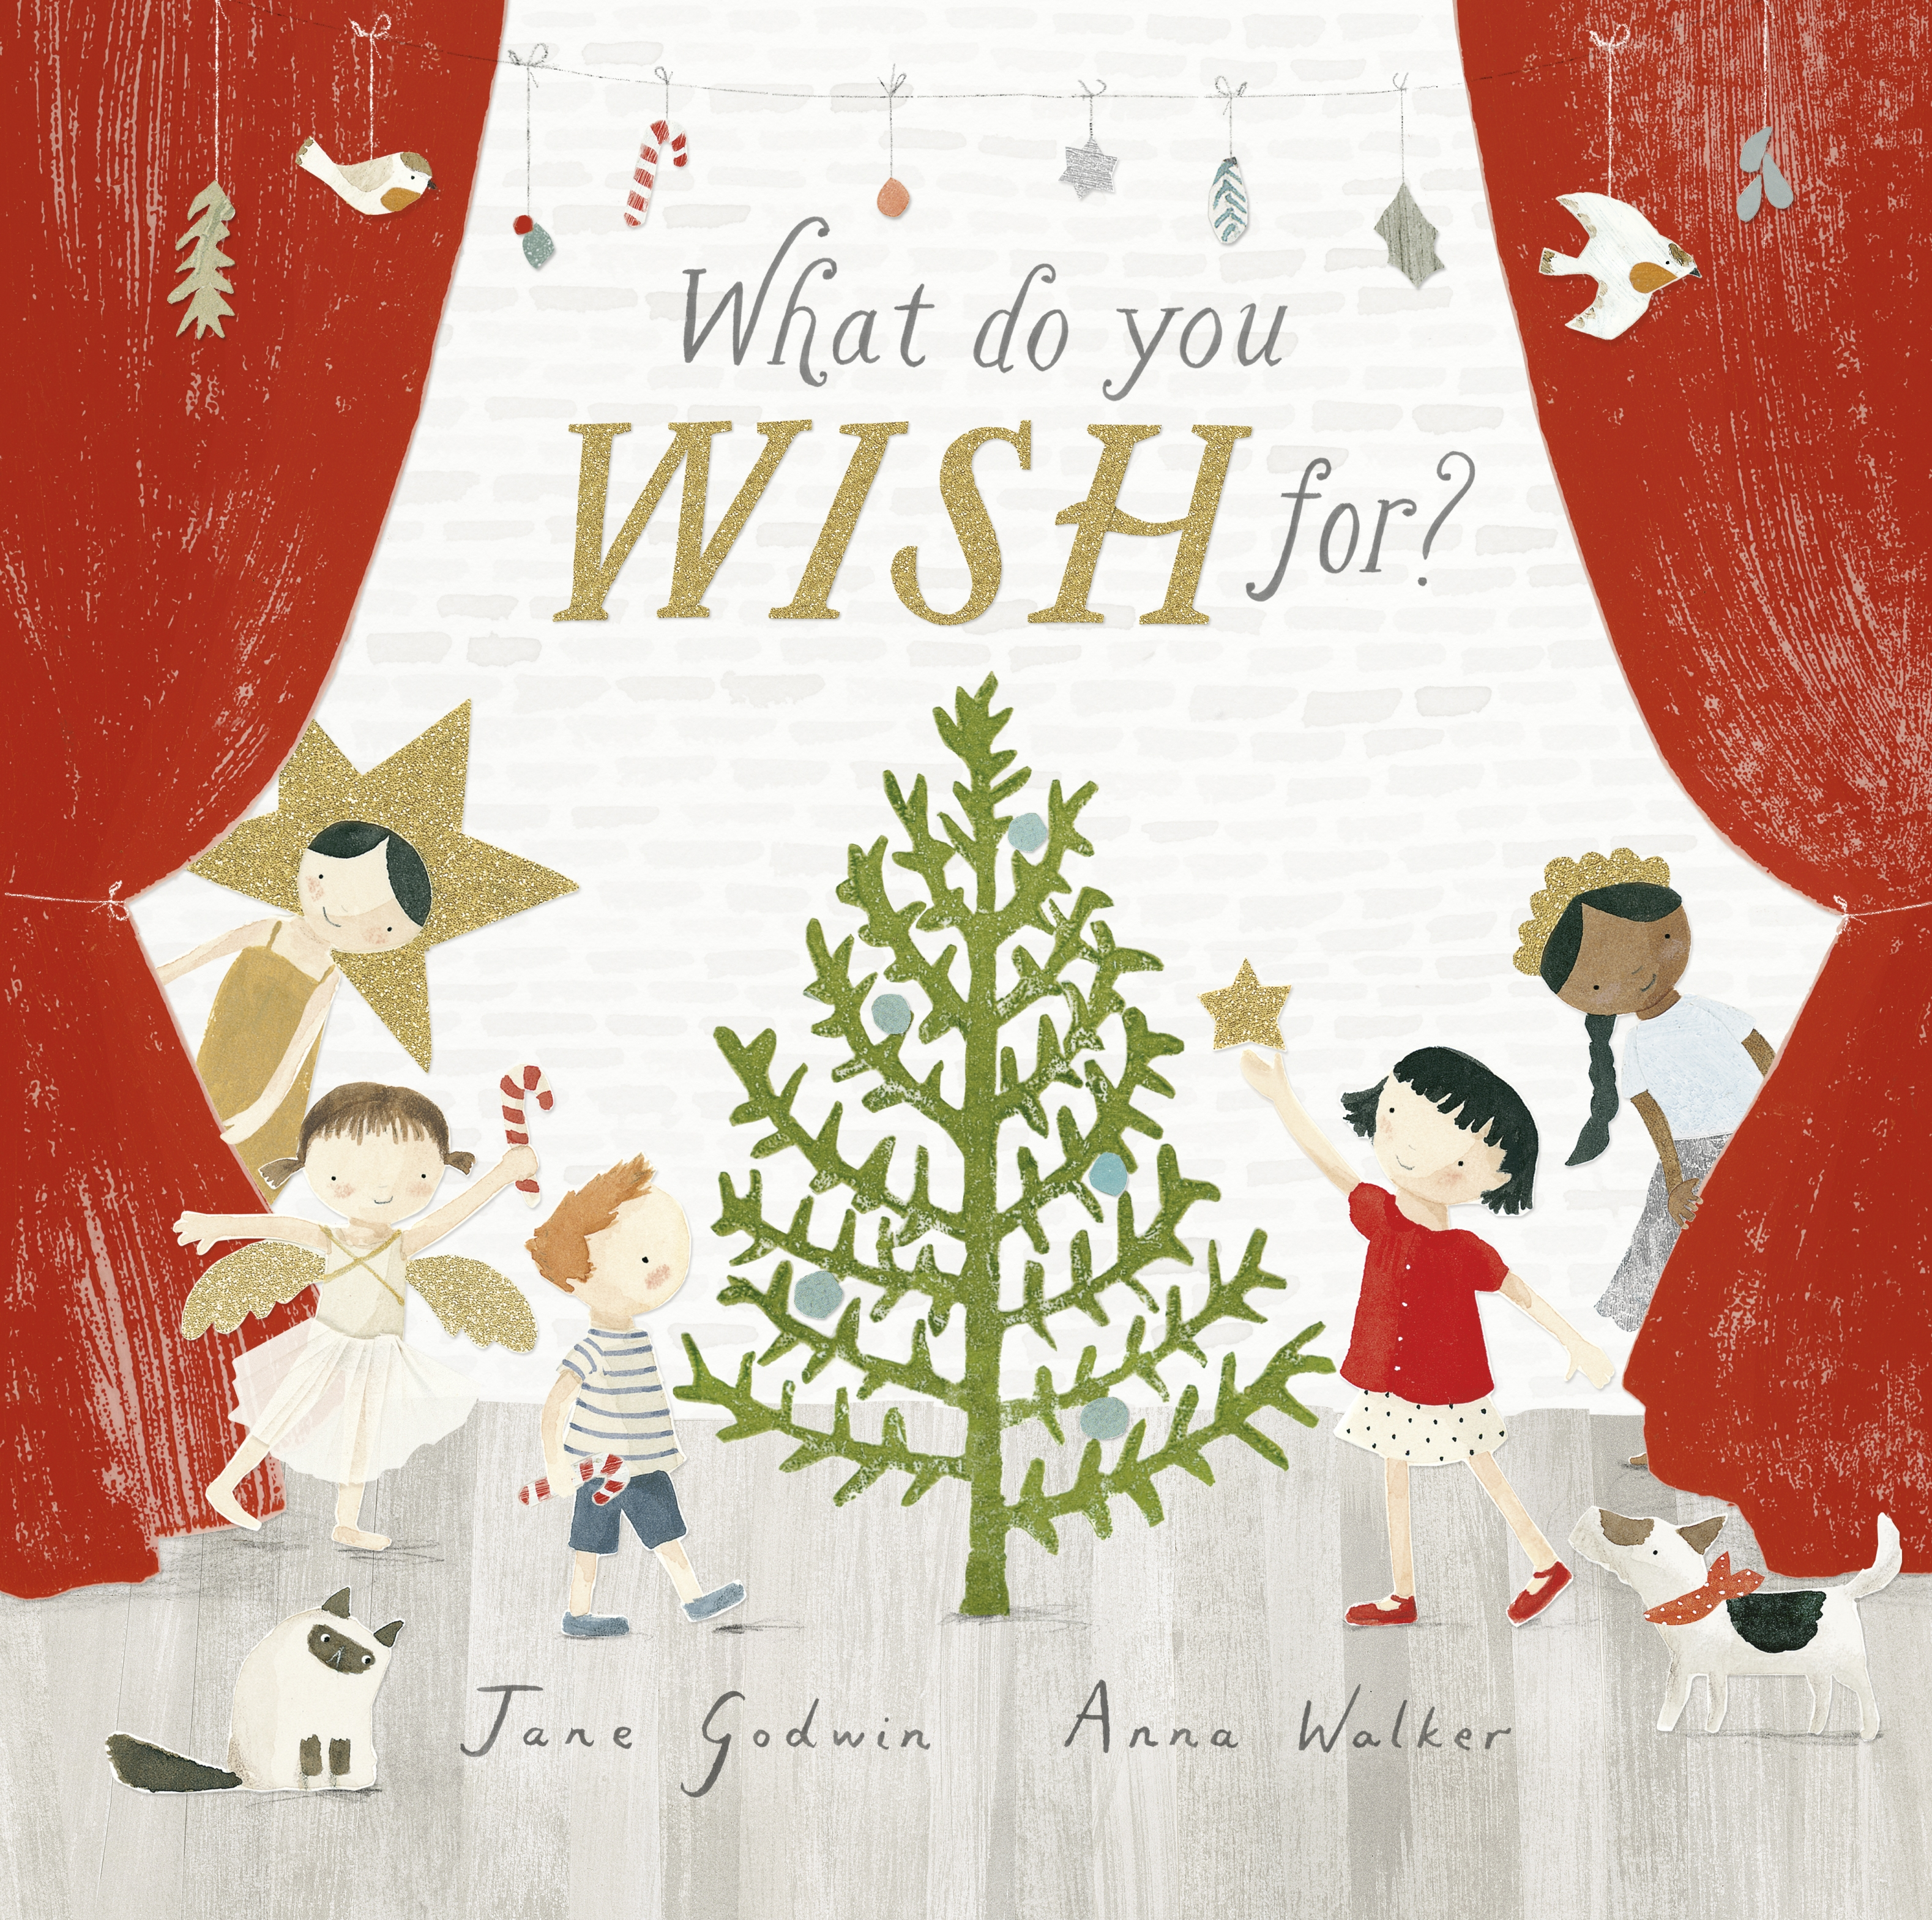 Wish For Christmas.What Do You Wish For By Jane Godwin Penguin Books Australia